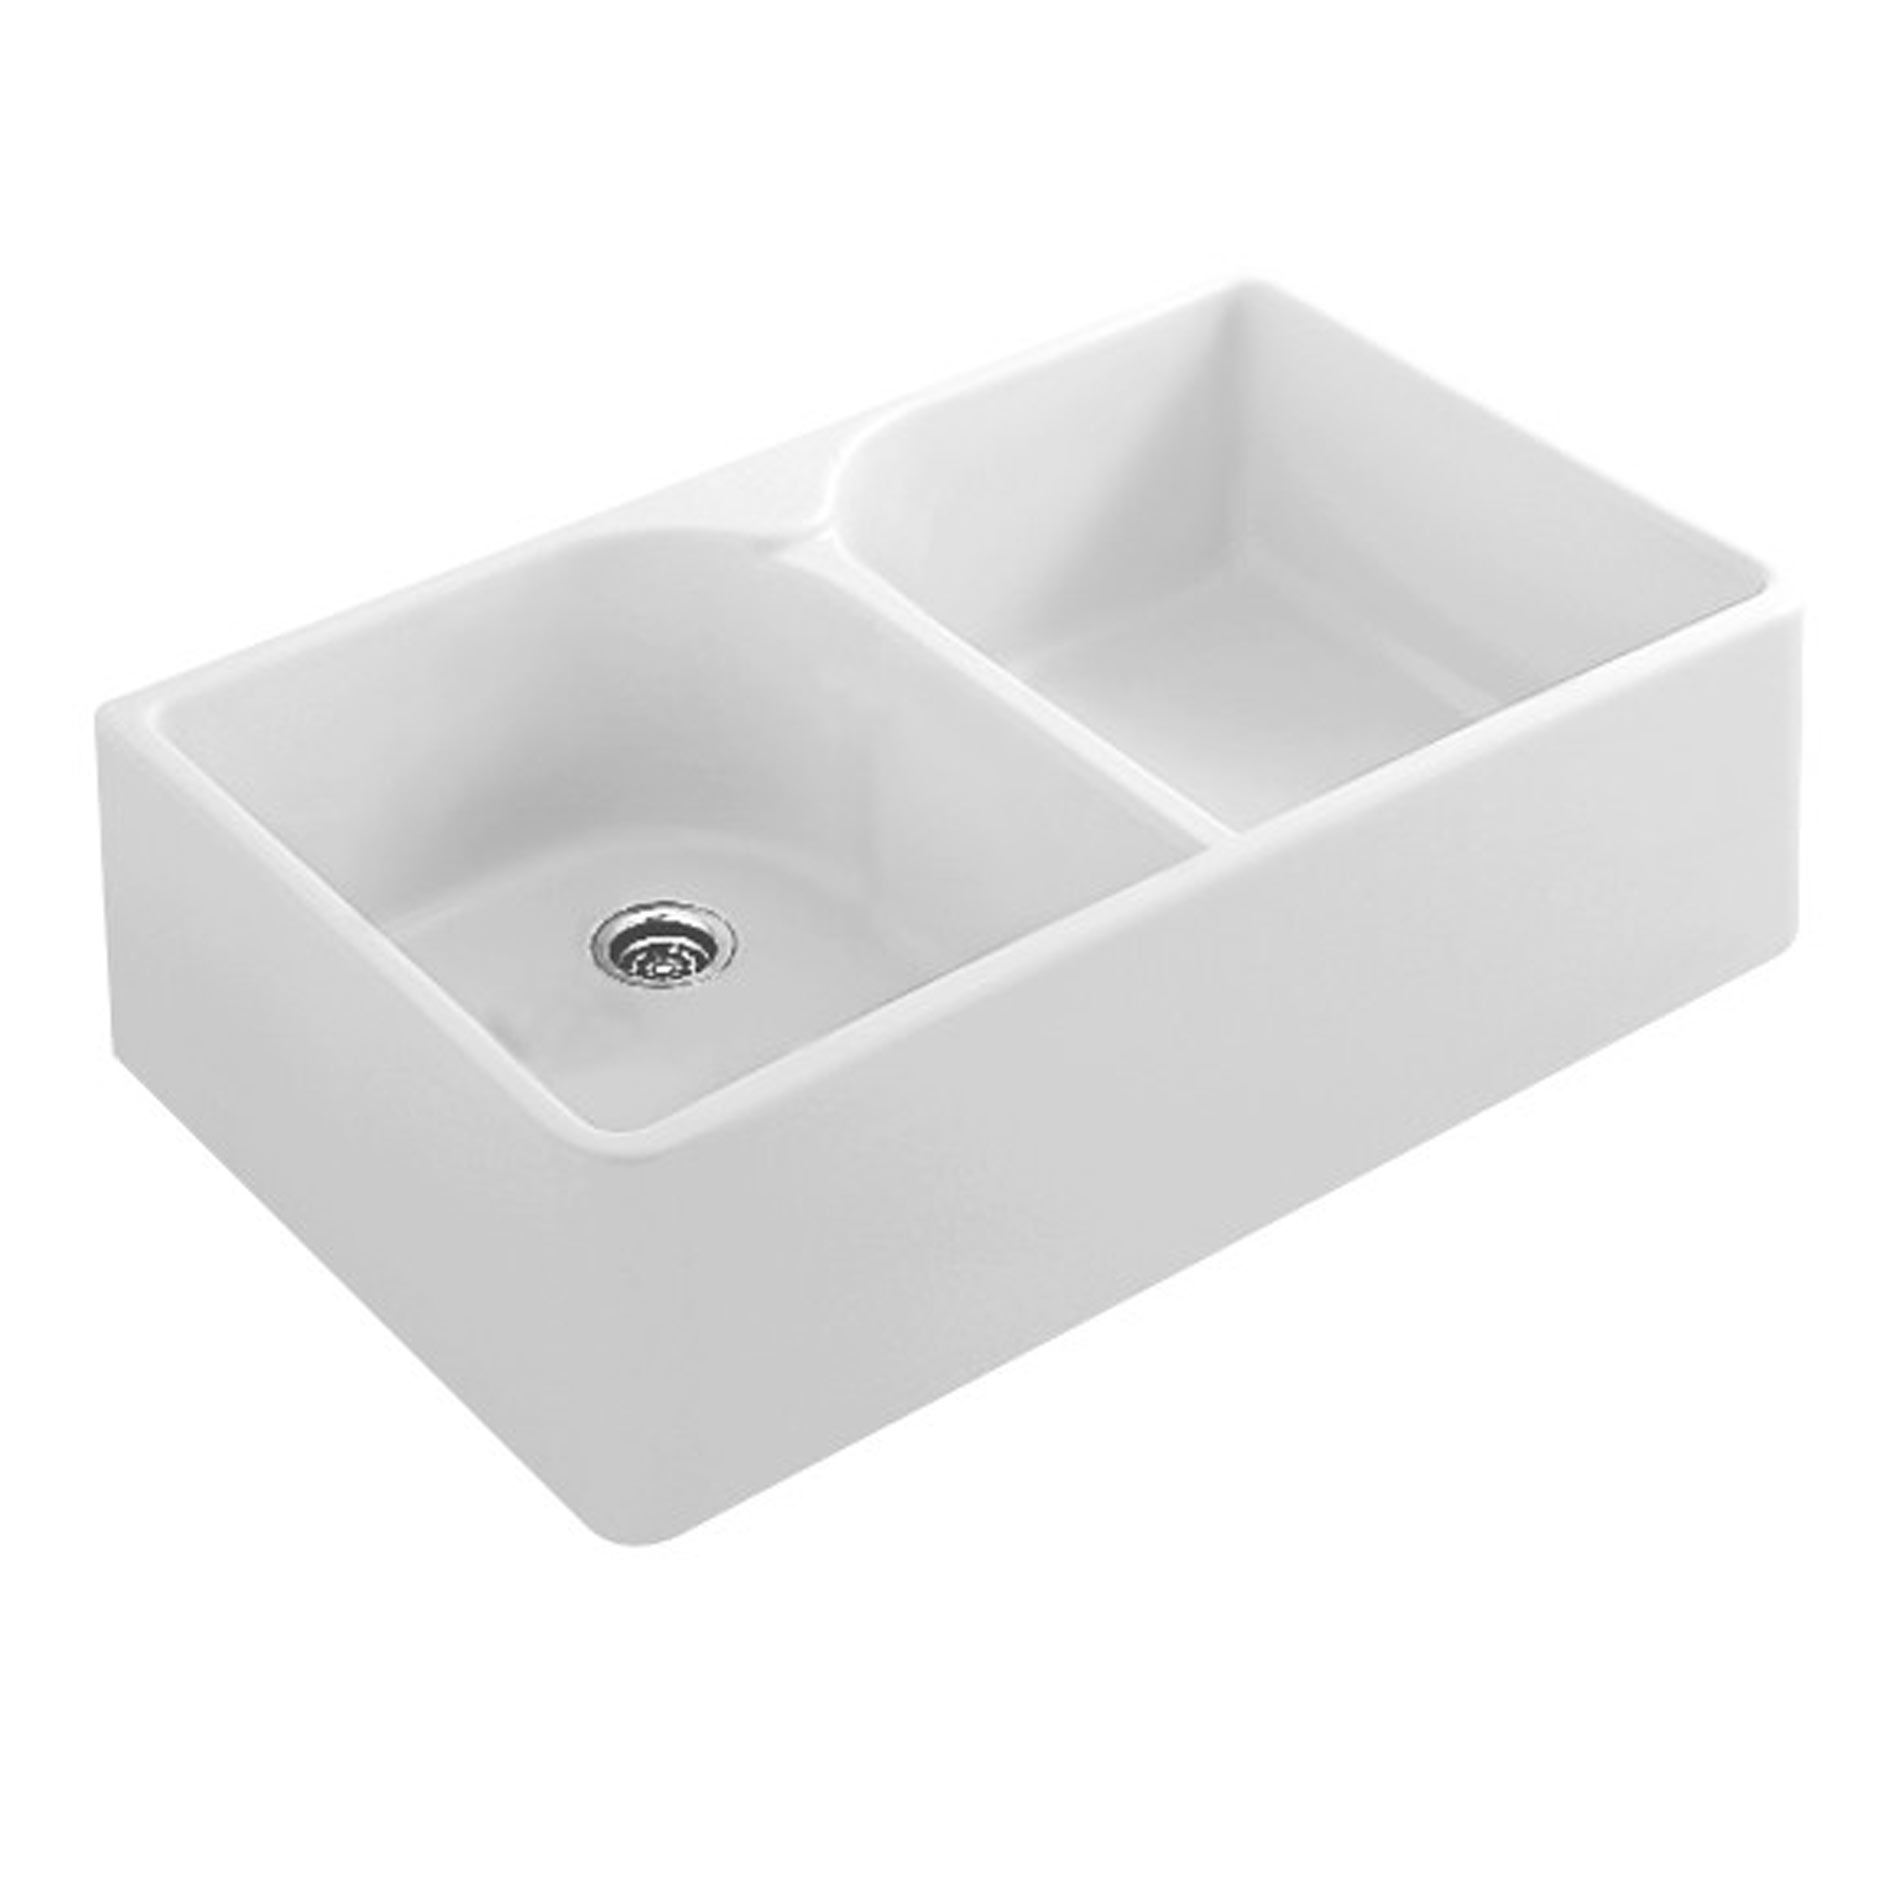 Kitchen Sinks & Taps Villeroy & Boch Farmhouse 80 Ceramic Sink 6331